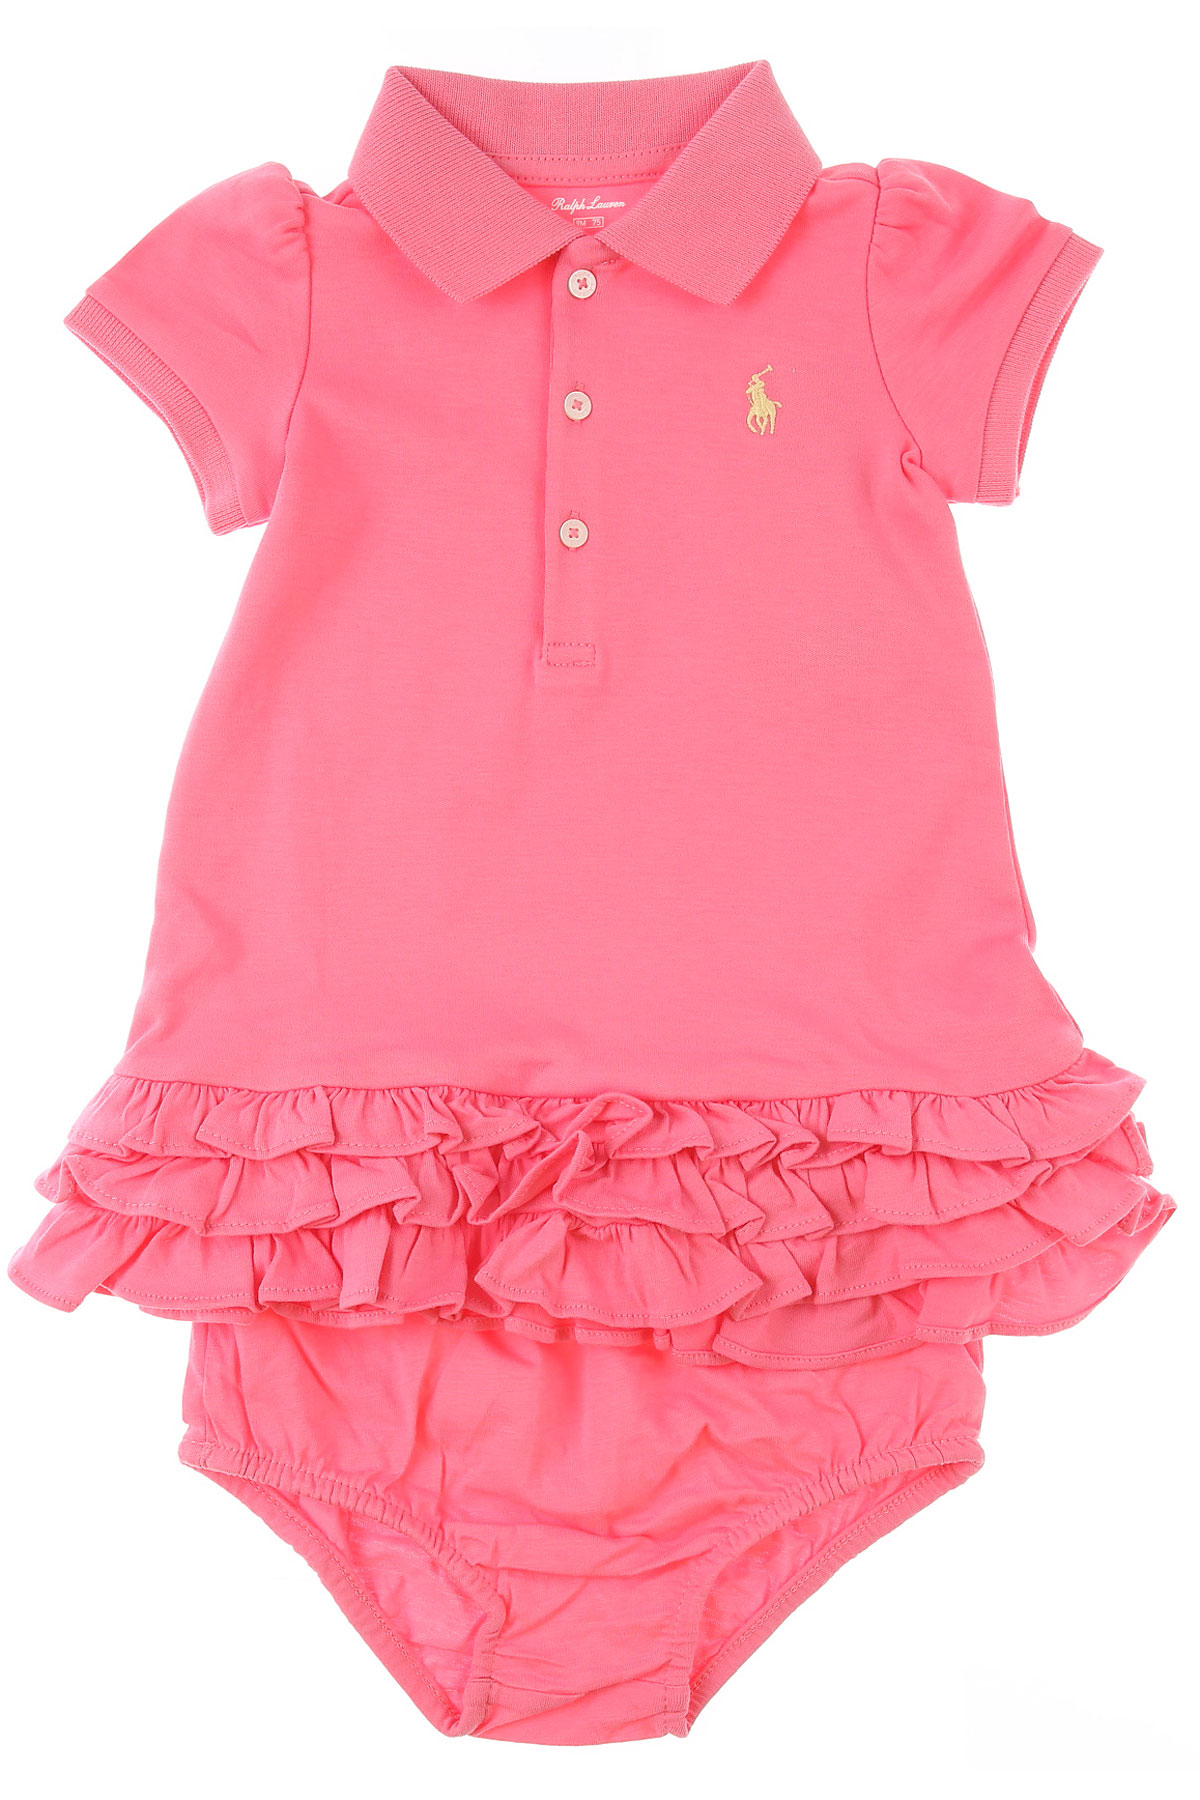 Ralph Lauren Baby Dress for Girls On Sale, Hot Pink, Cotton, 2019, 3M 9M